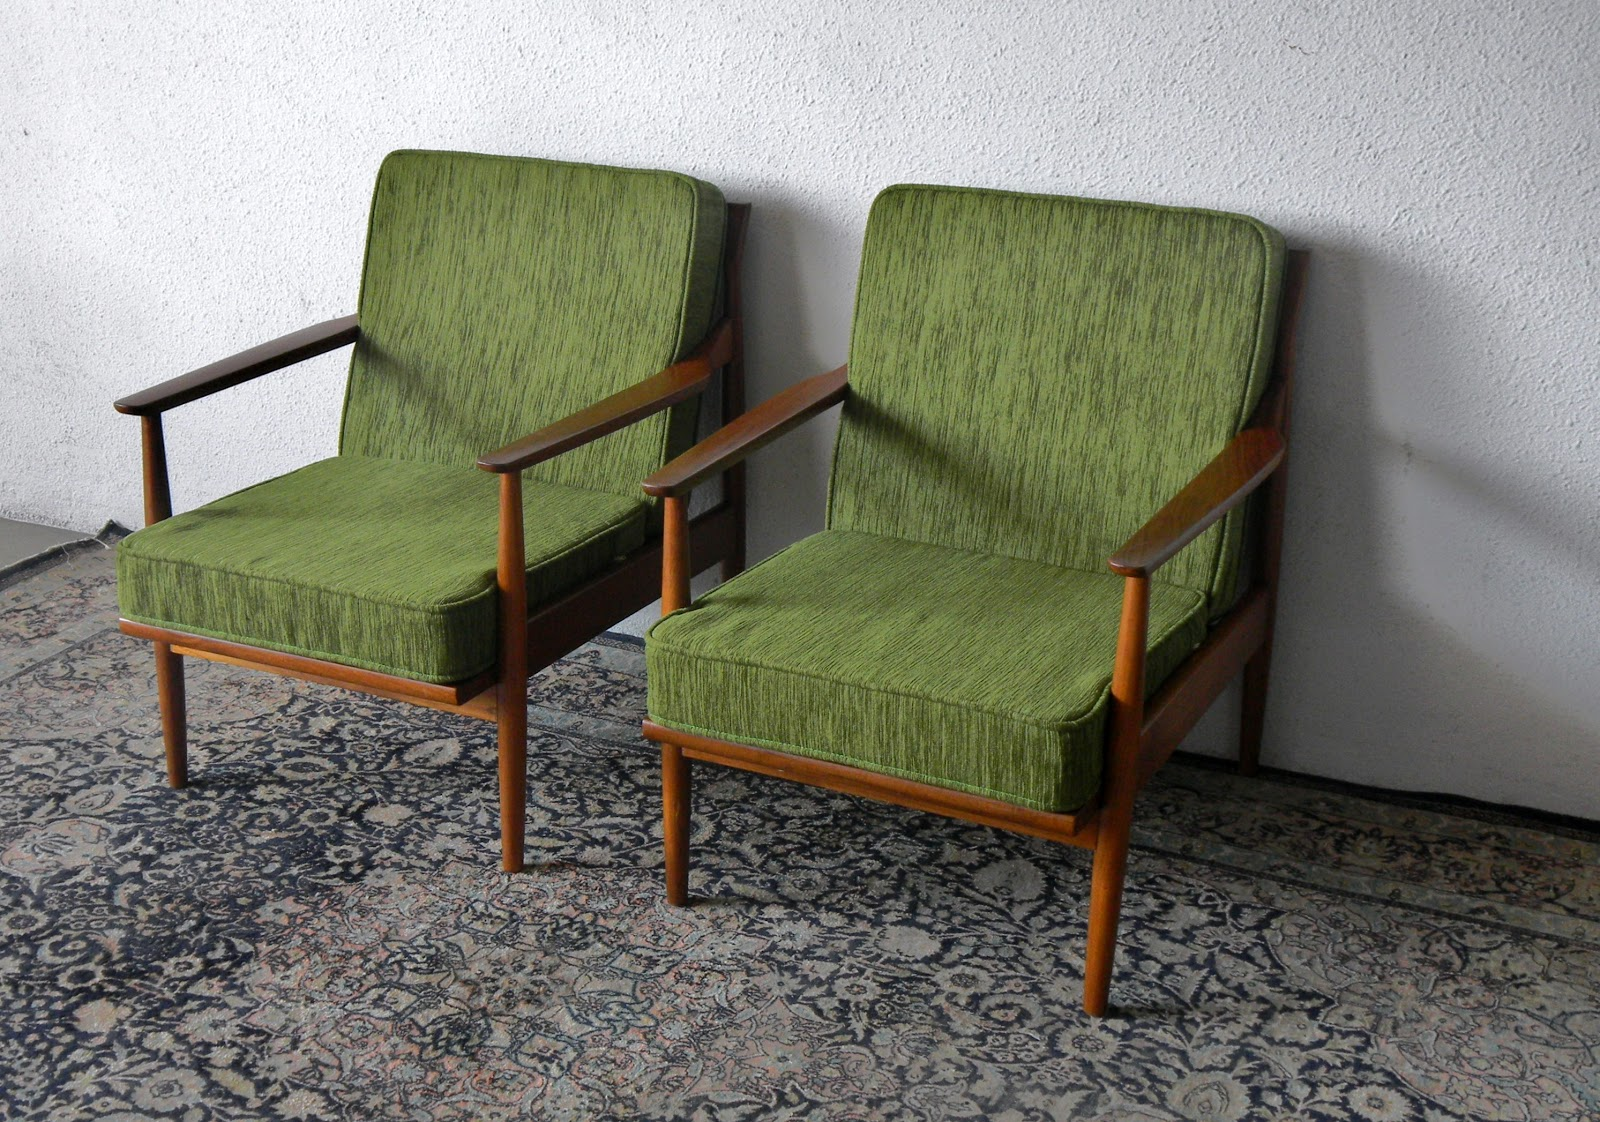 Second Charm Midcentury Modern Sofas And Armchairs